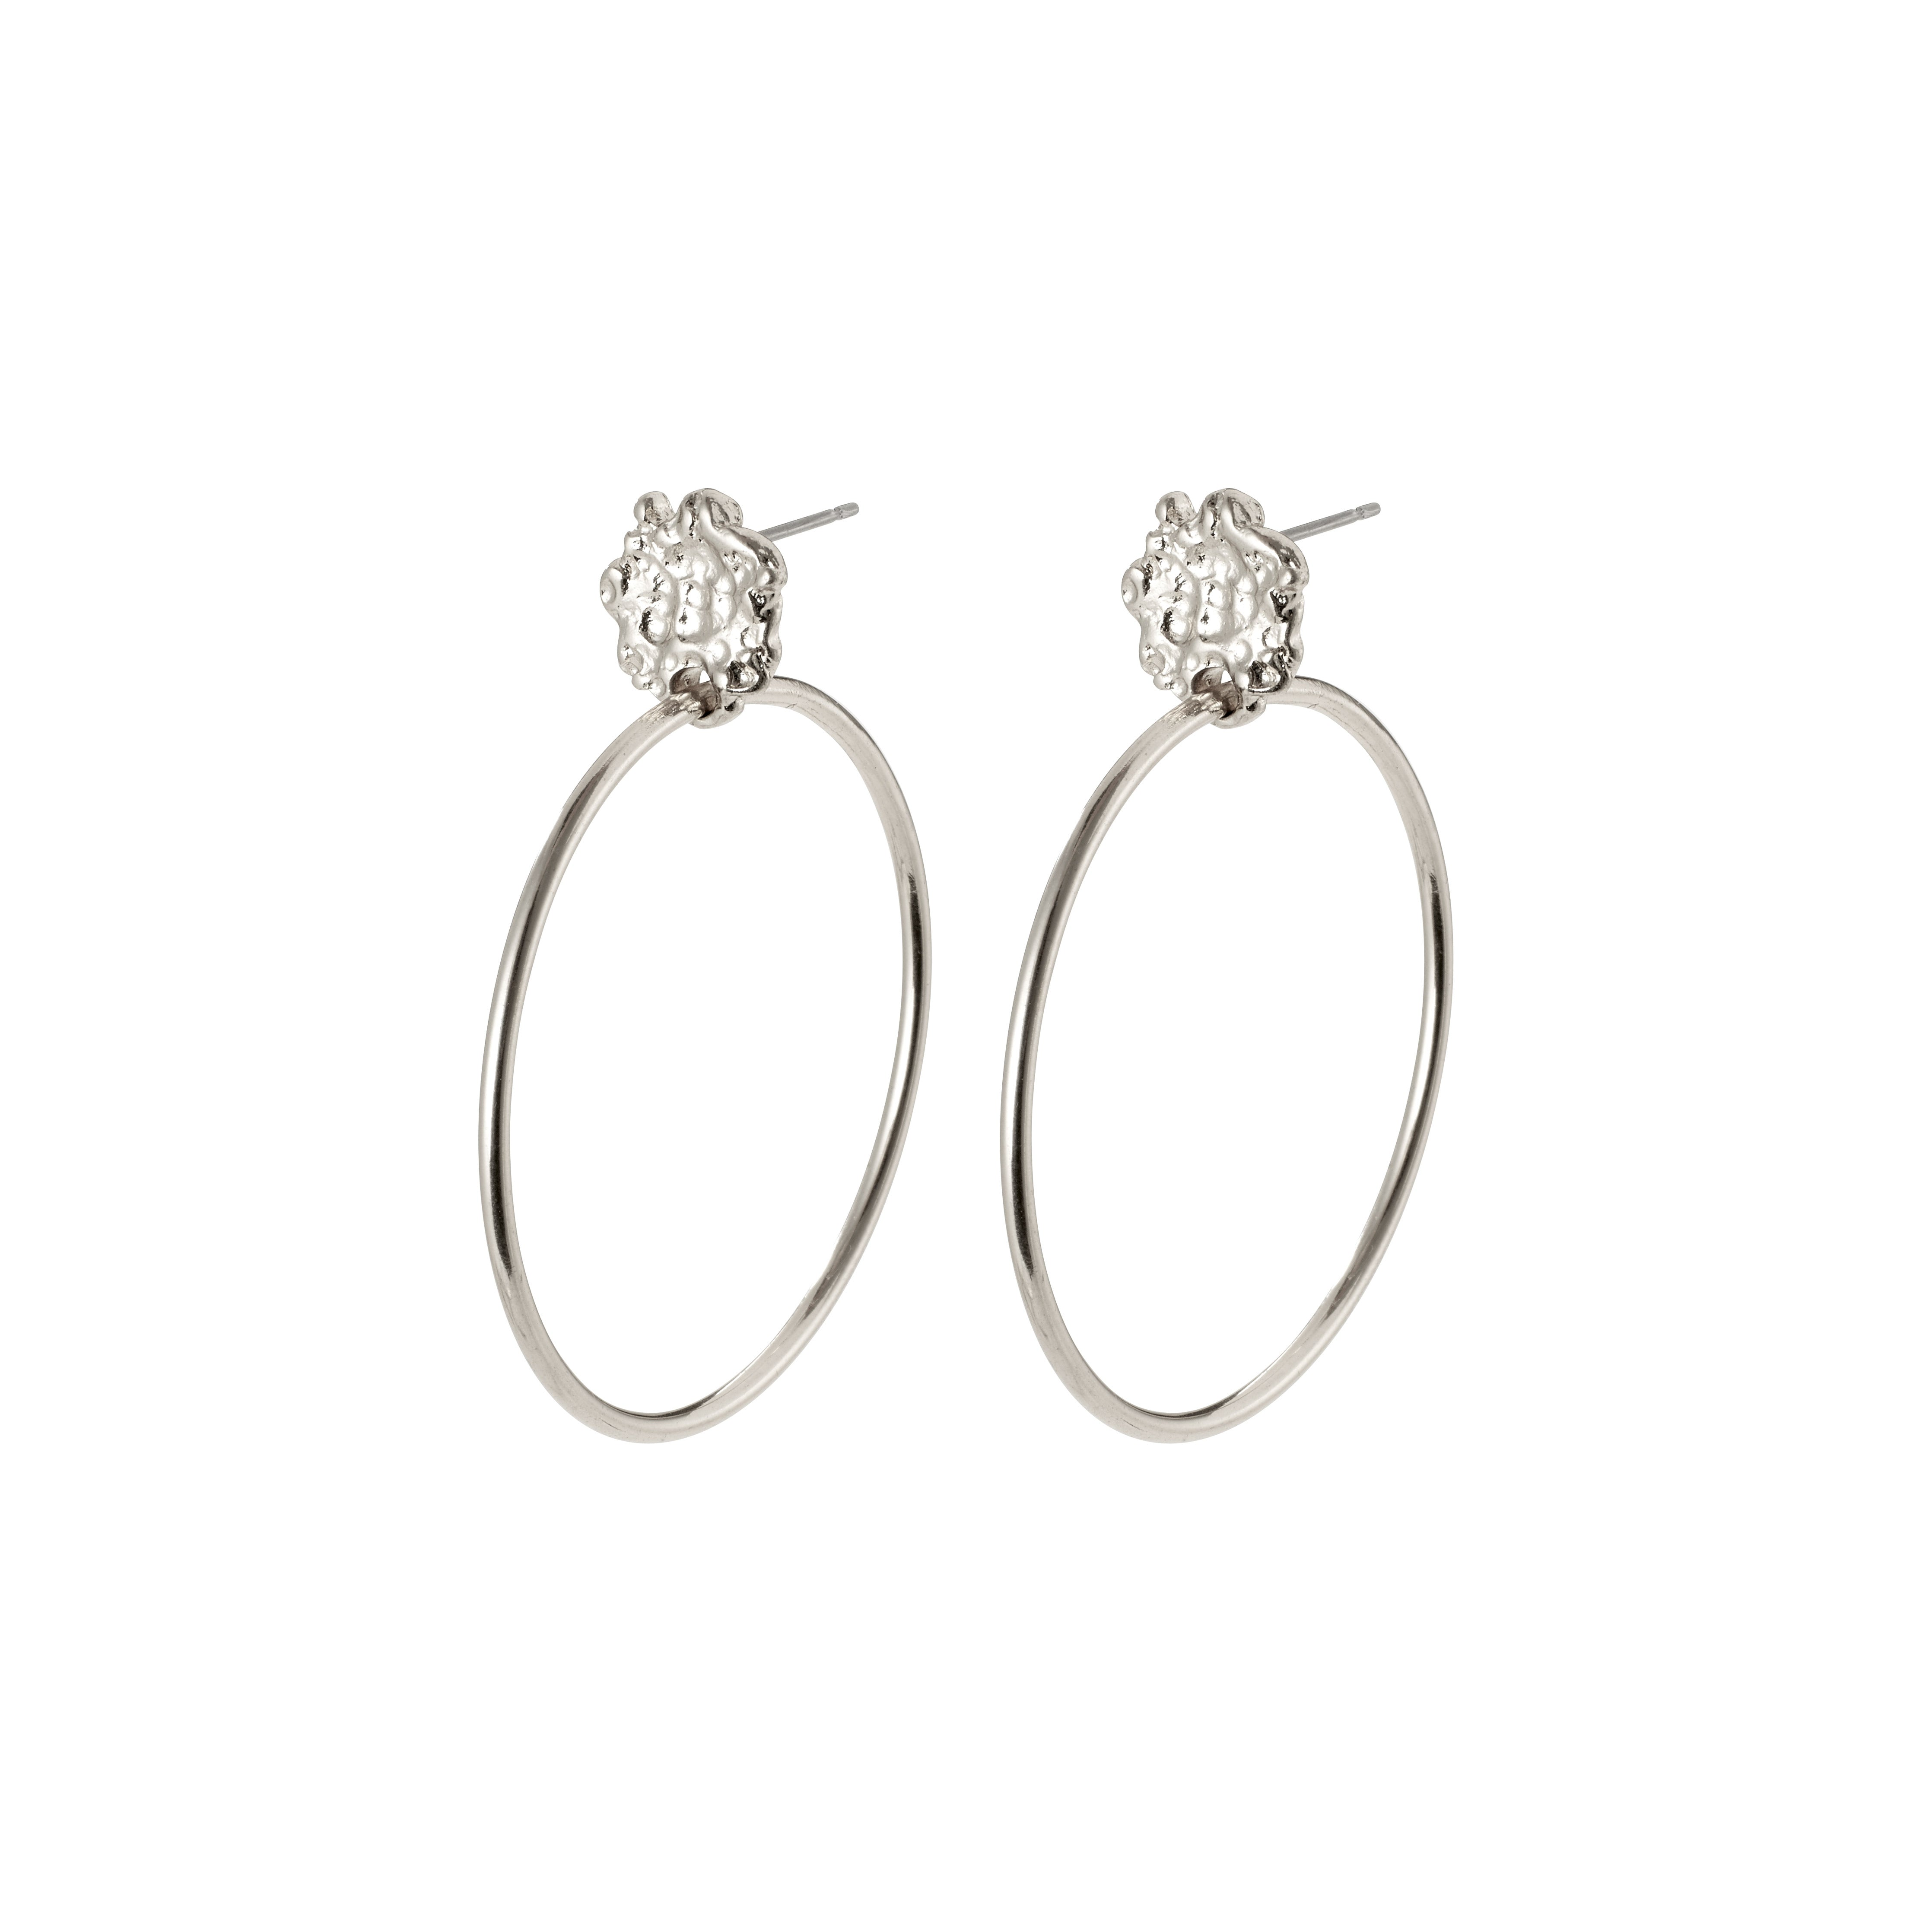 Earrings : Feelings of L.A. : Silver Plated